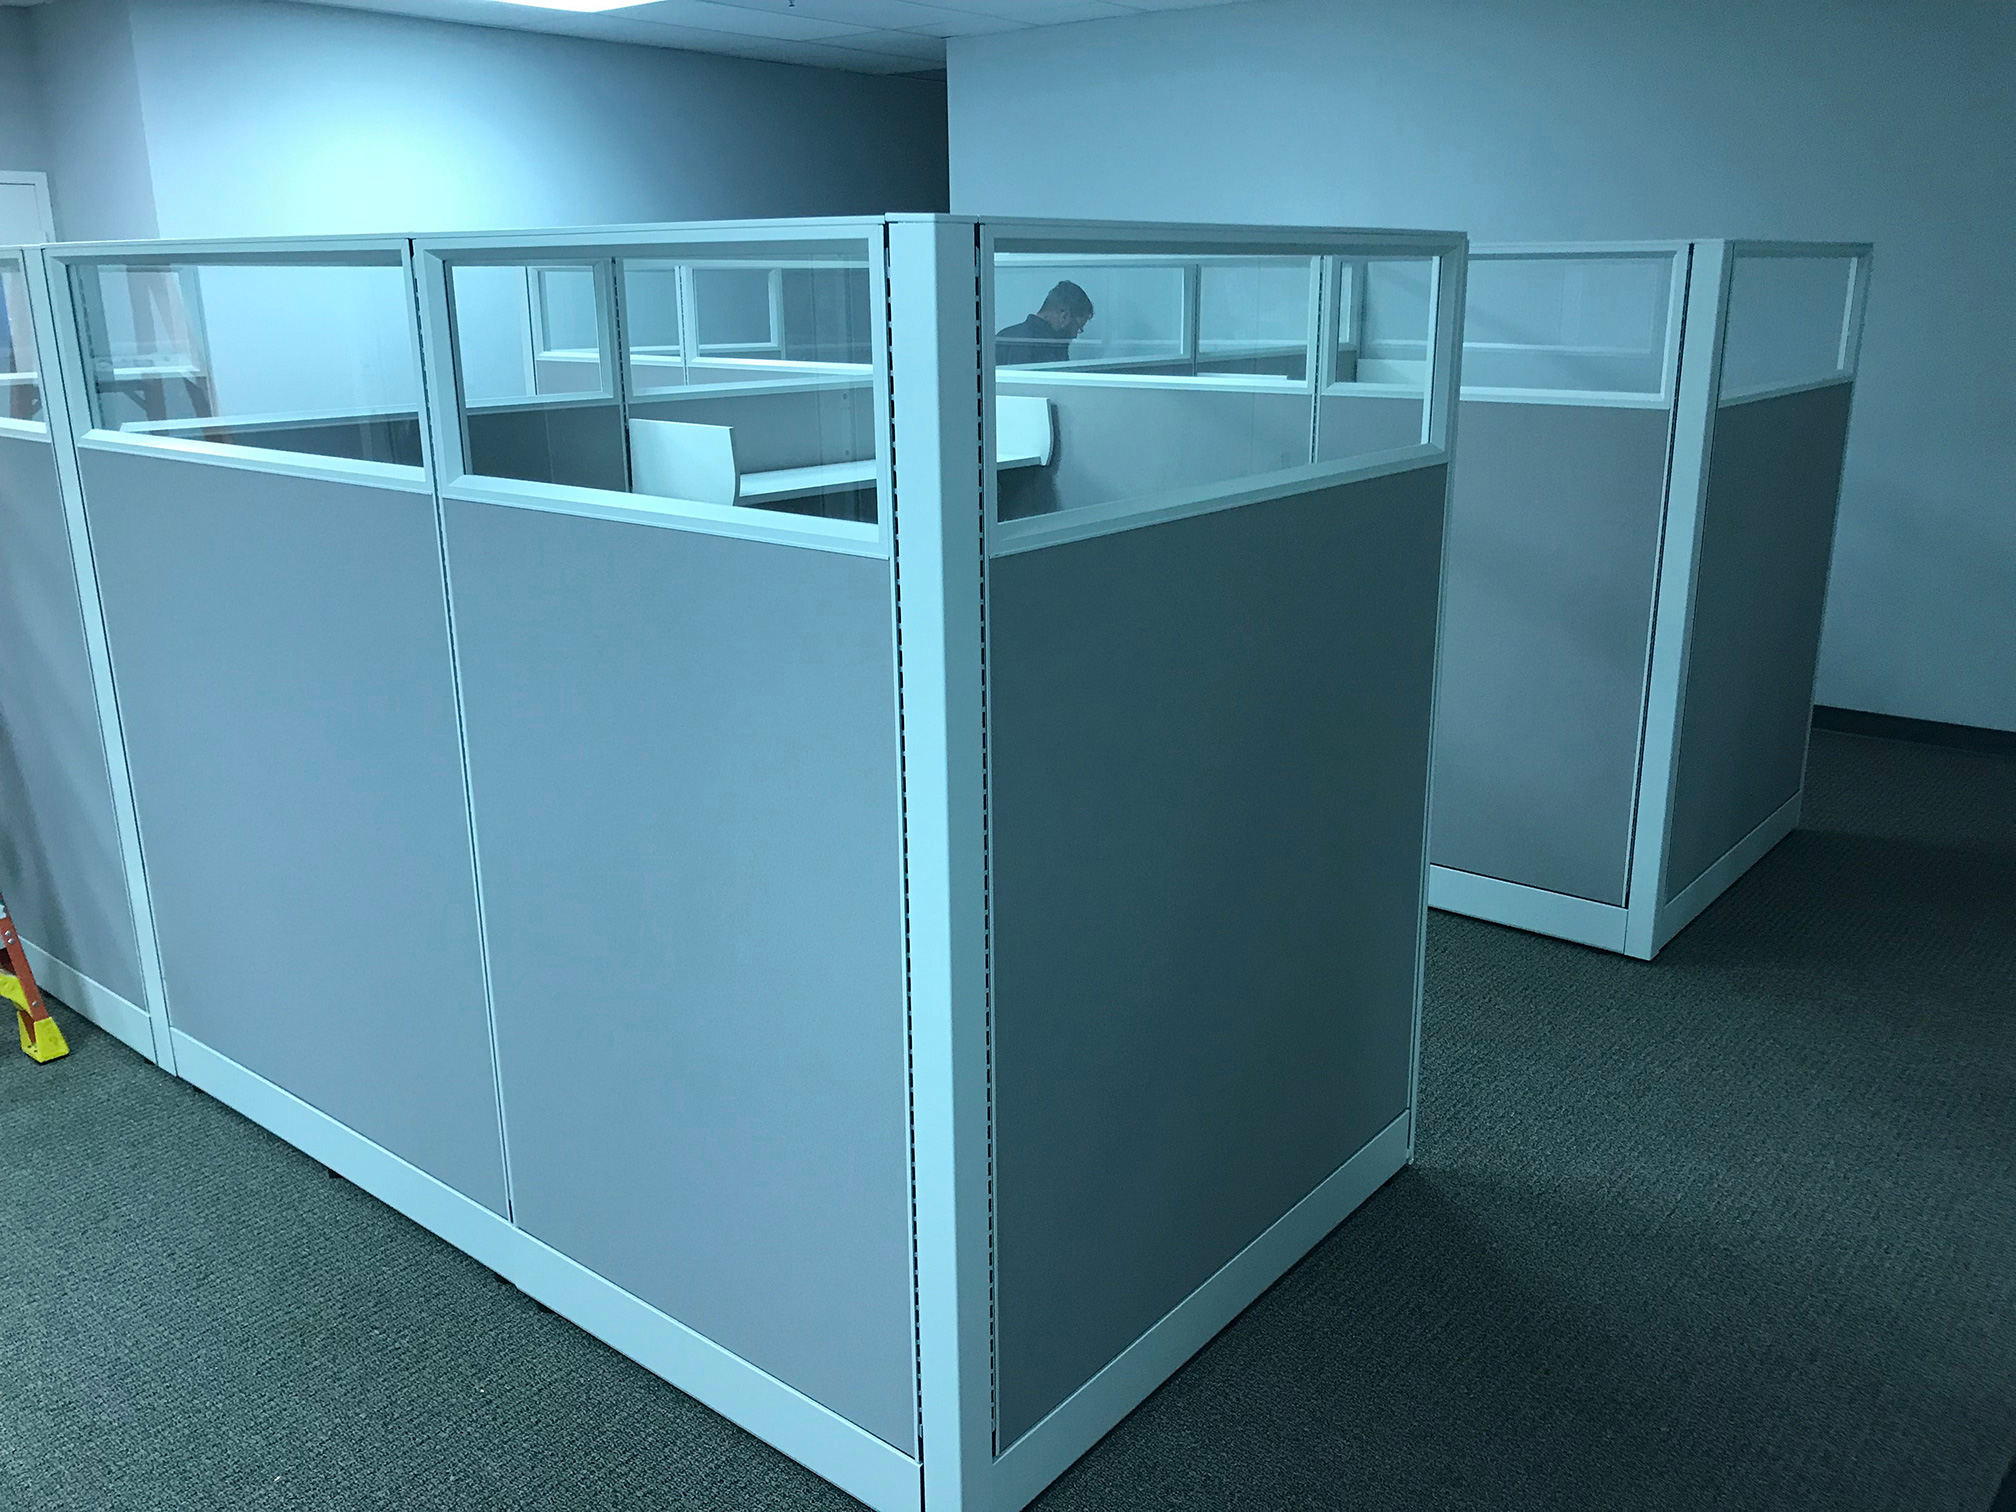 office-cubicles-for-sale-in-valparaiso-florida-2.jpg